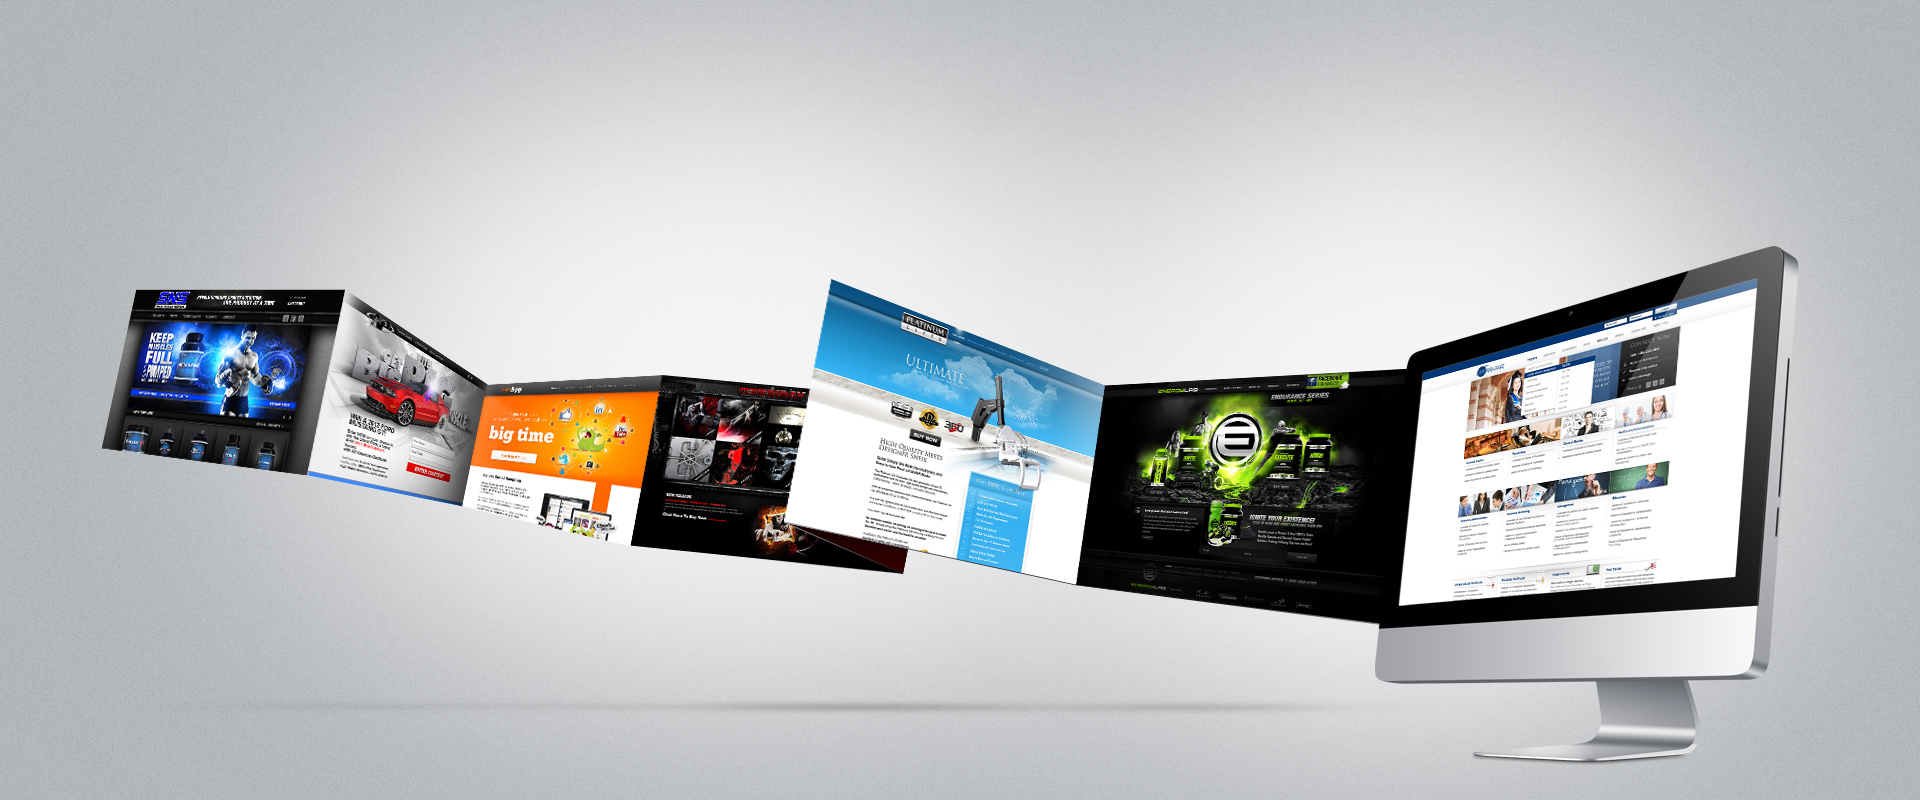 Dpm Web Design Ltd All Services All Abilities